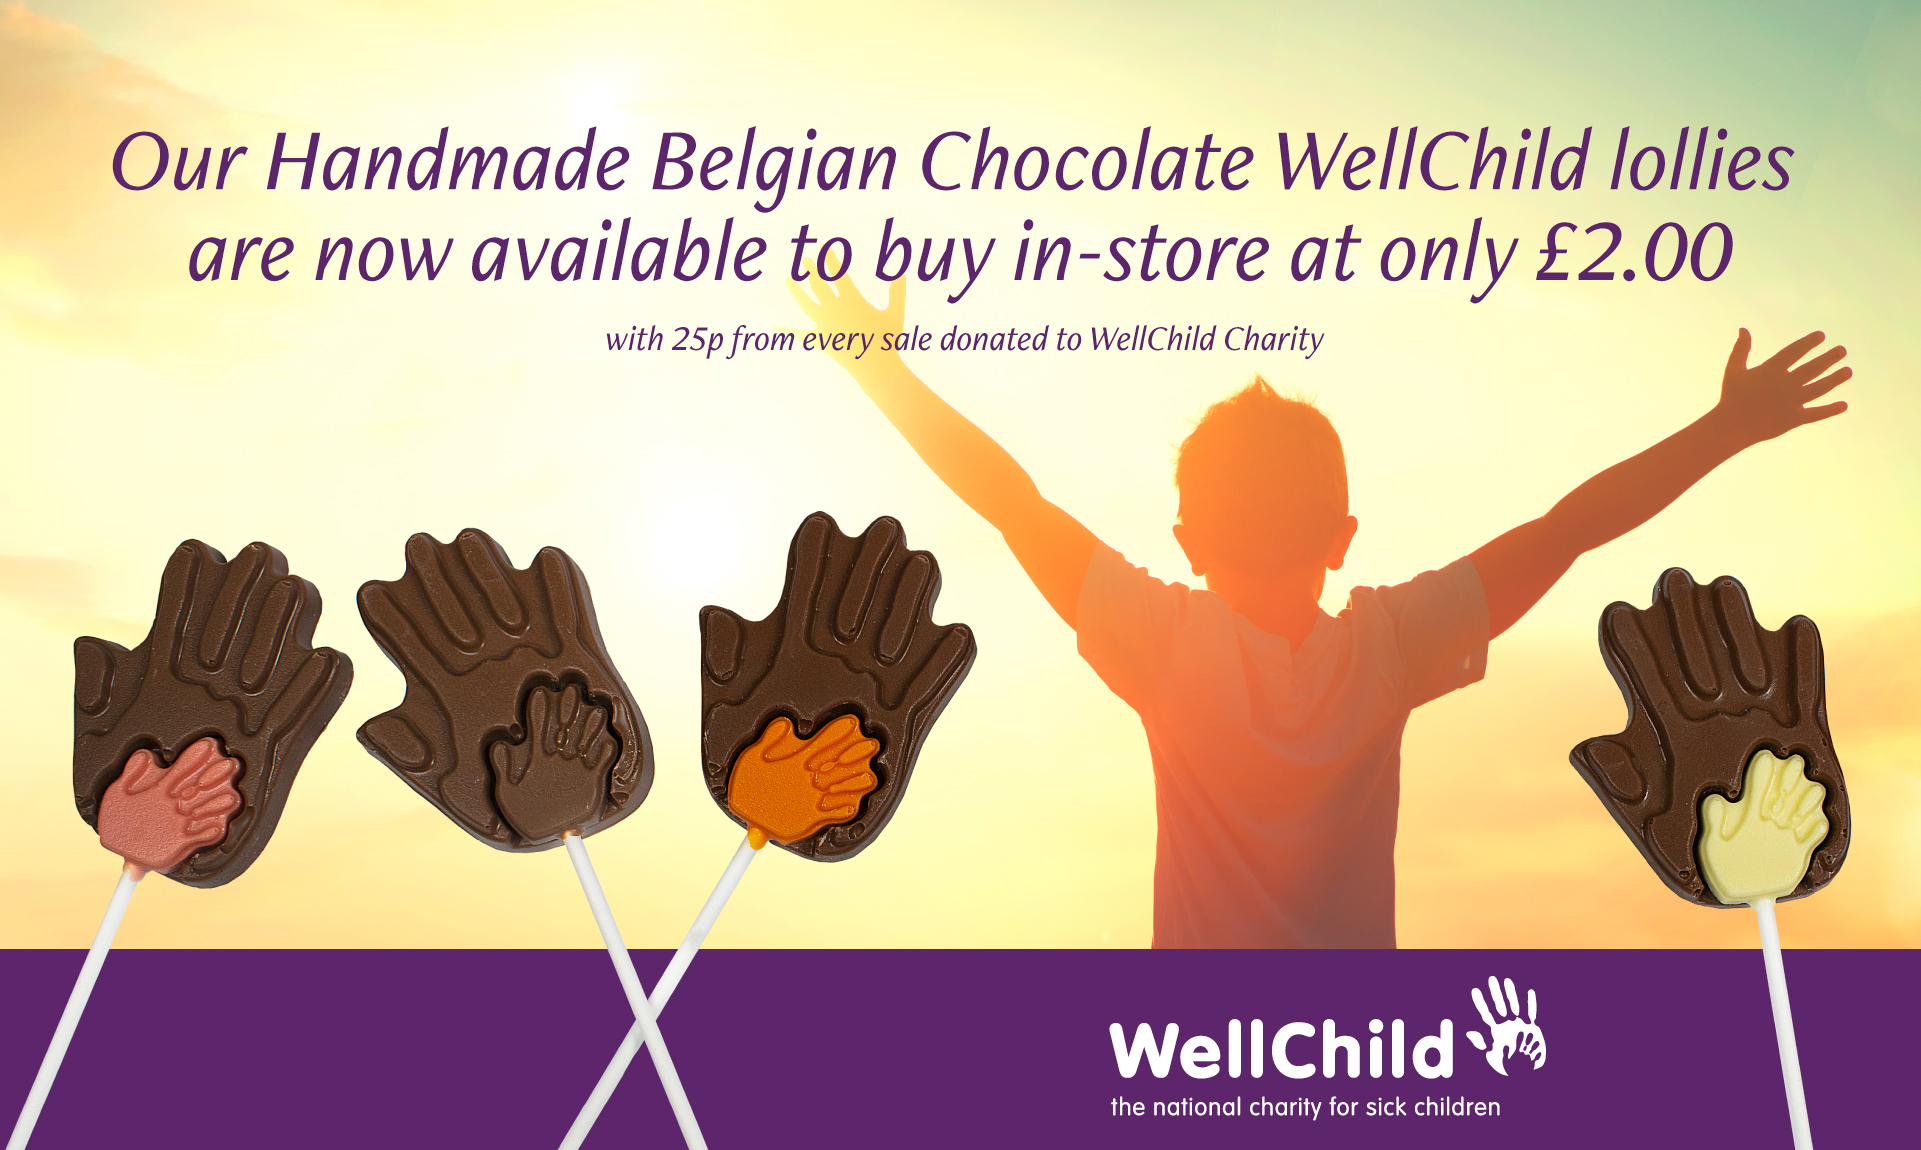 Our handmade Belgian Chocolate WellChild lollies are now available to buy in-store at only £2.00, with 25p from every sale donated to WellChild Charity